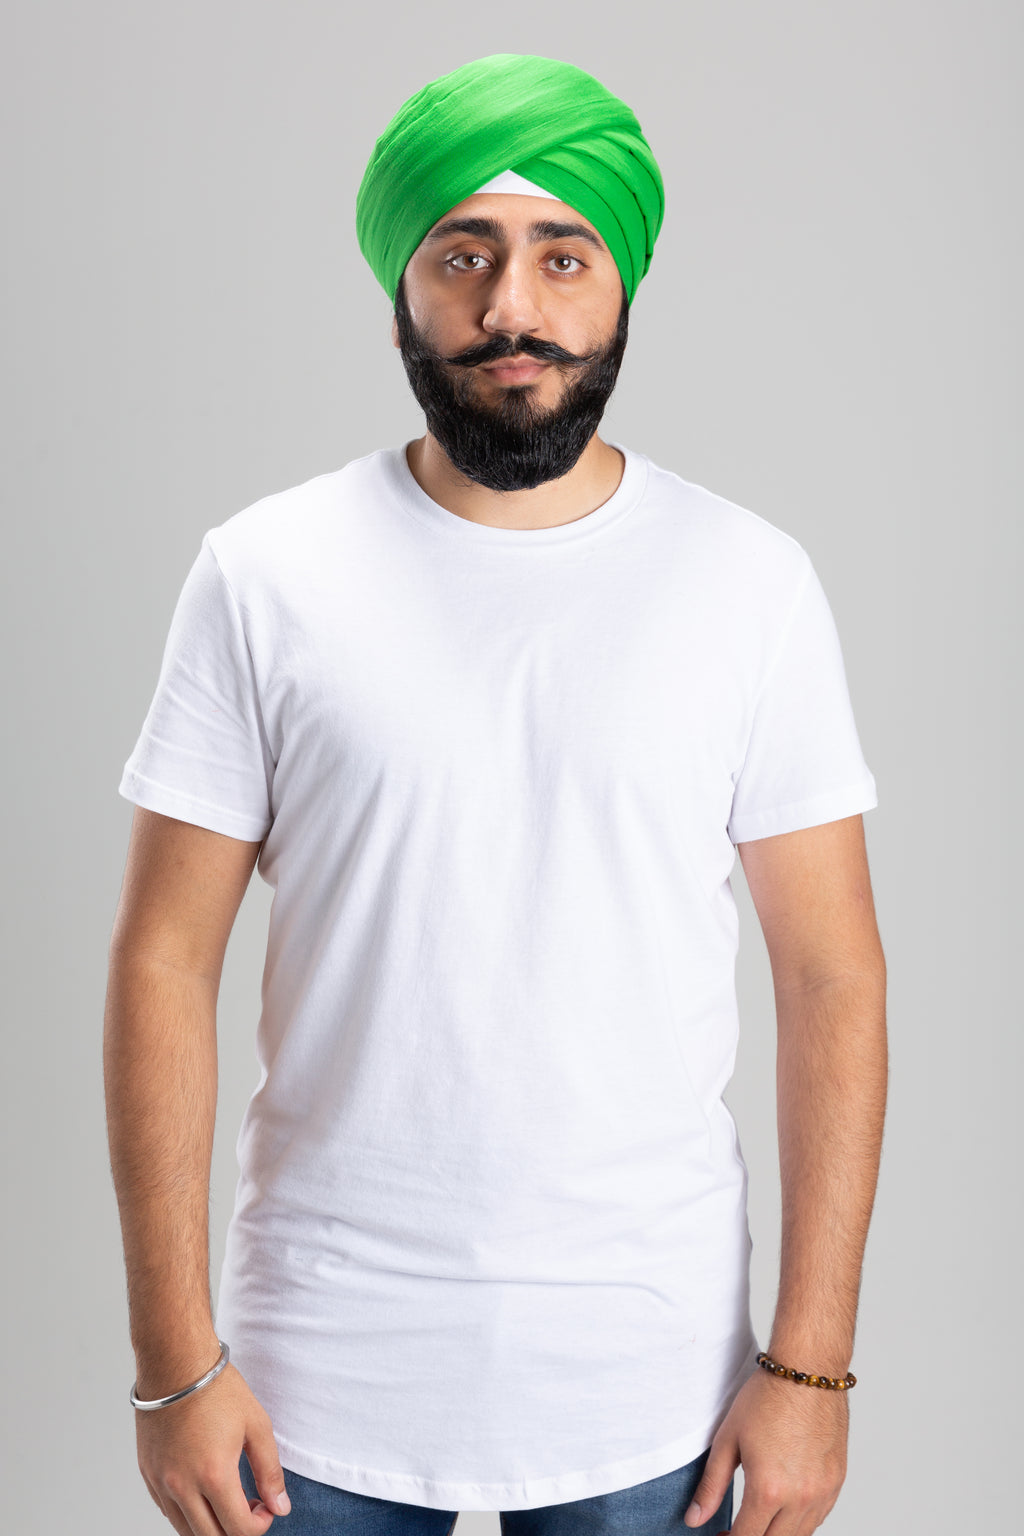 Sikh Man Wearing a Green Turban Keski